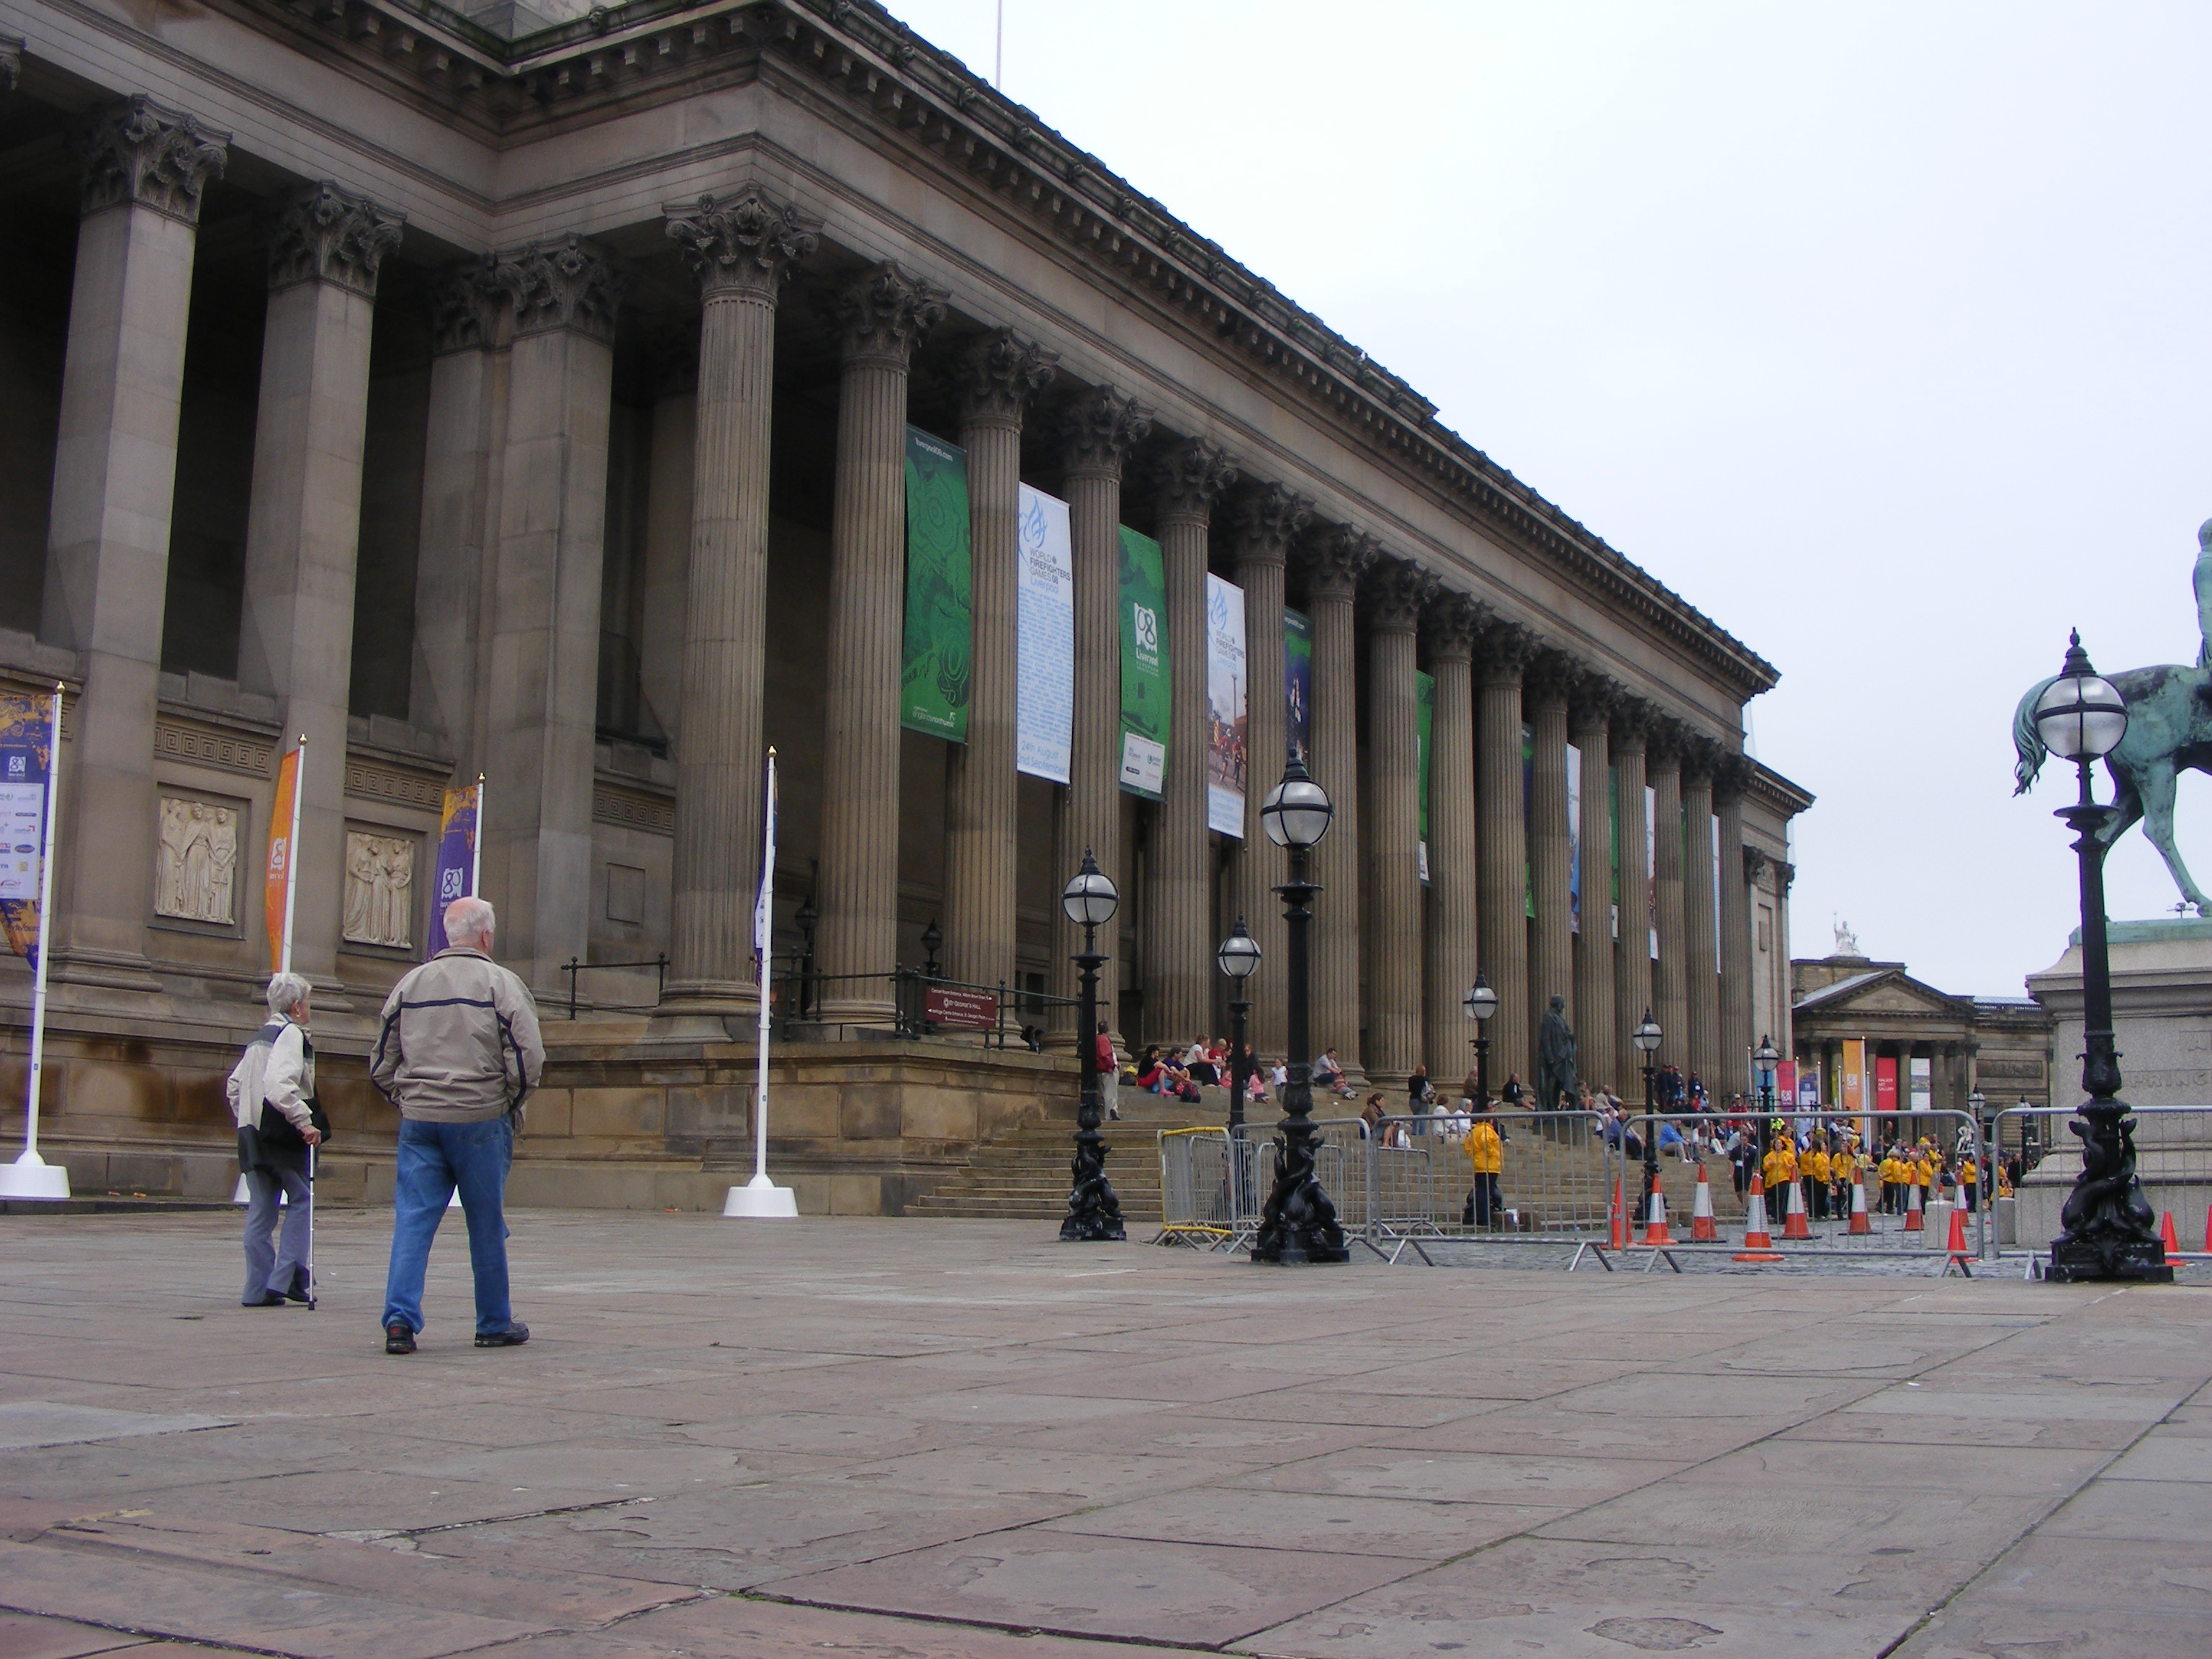 St. Georges Hall, Liverpool